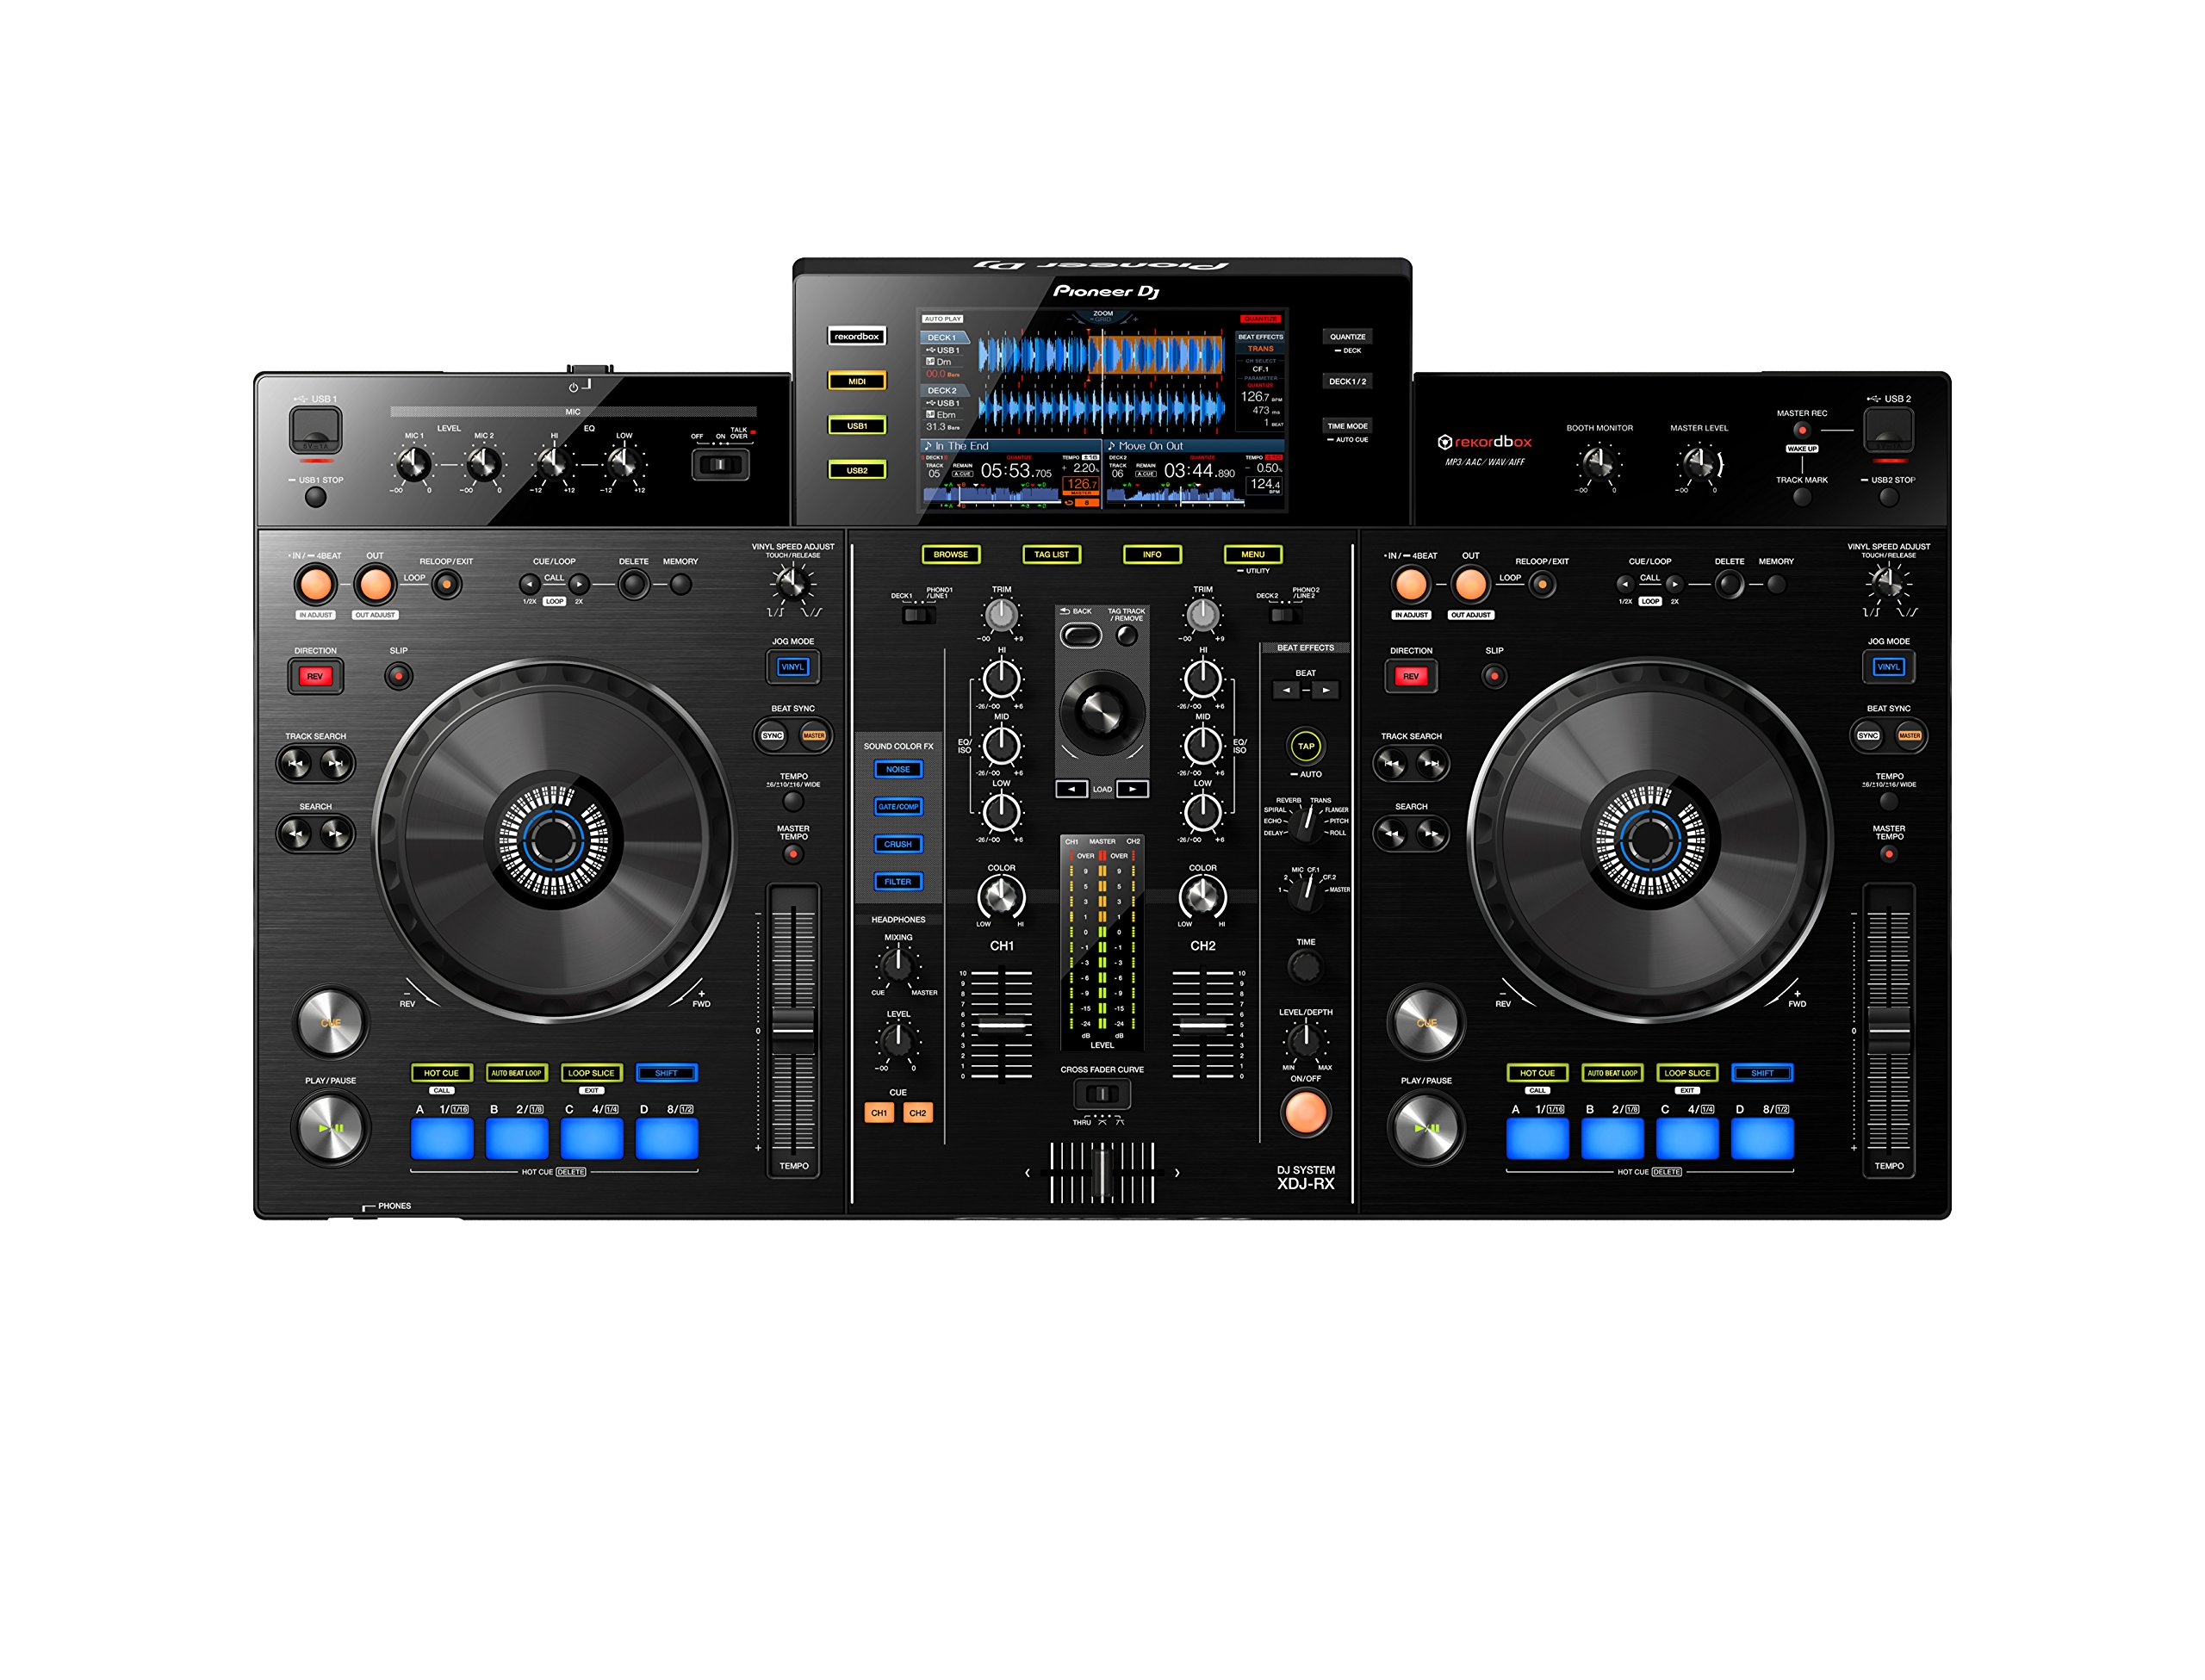 10 Best DJ Controllers in 2019 [Buying Guide] - Music Critic